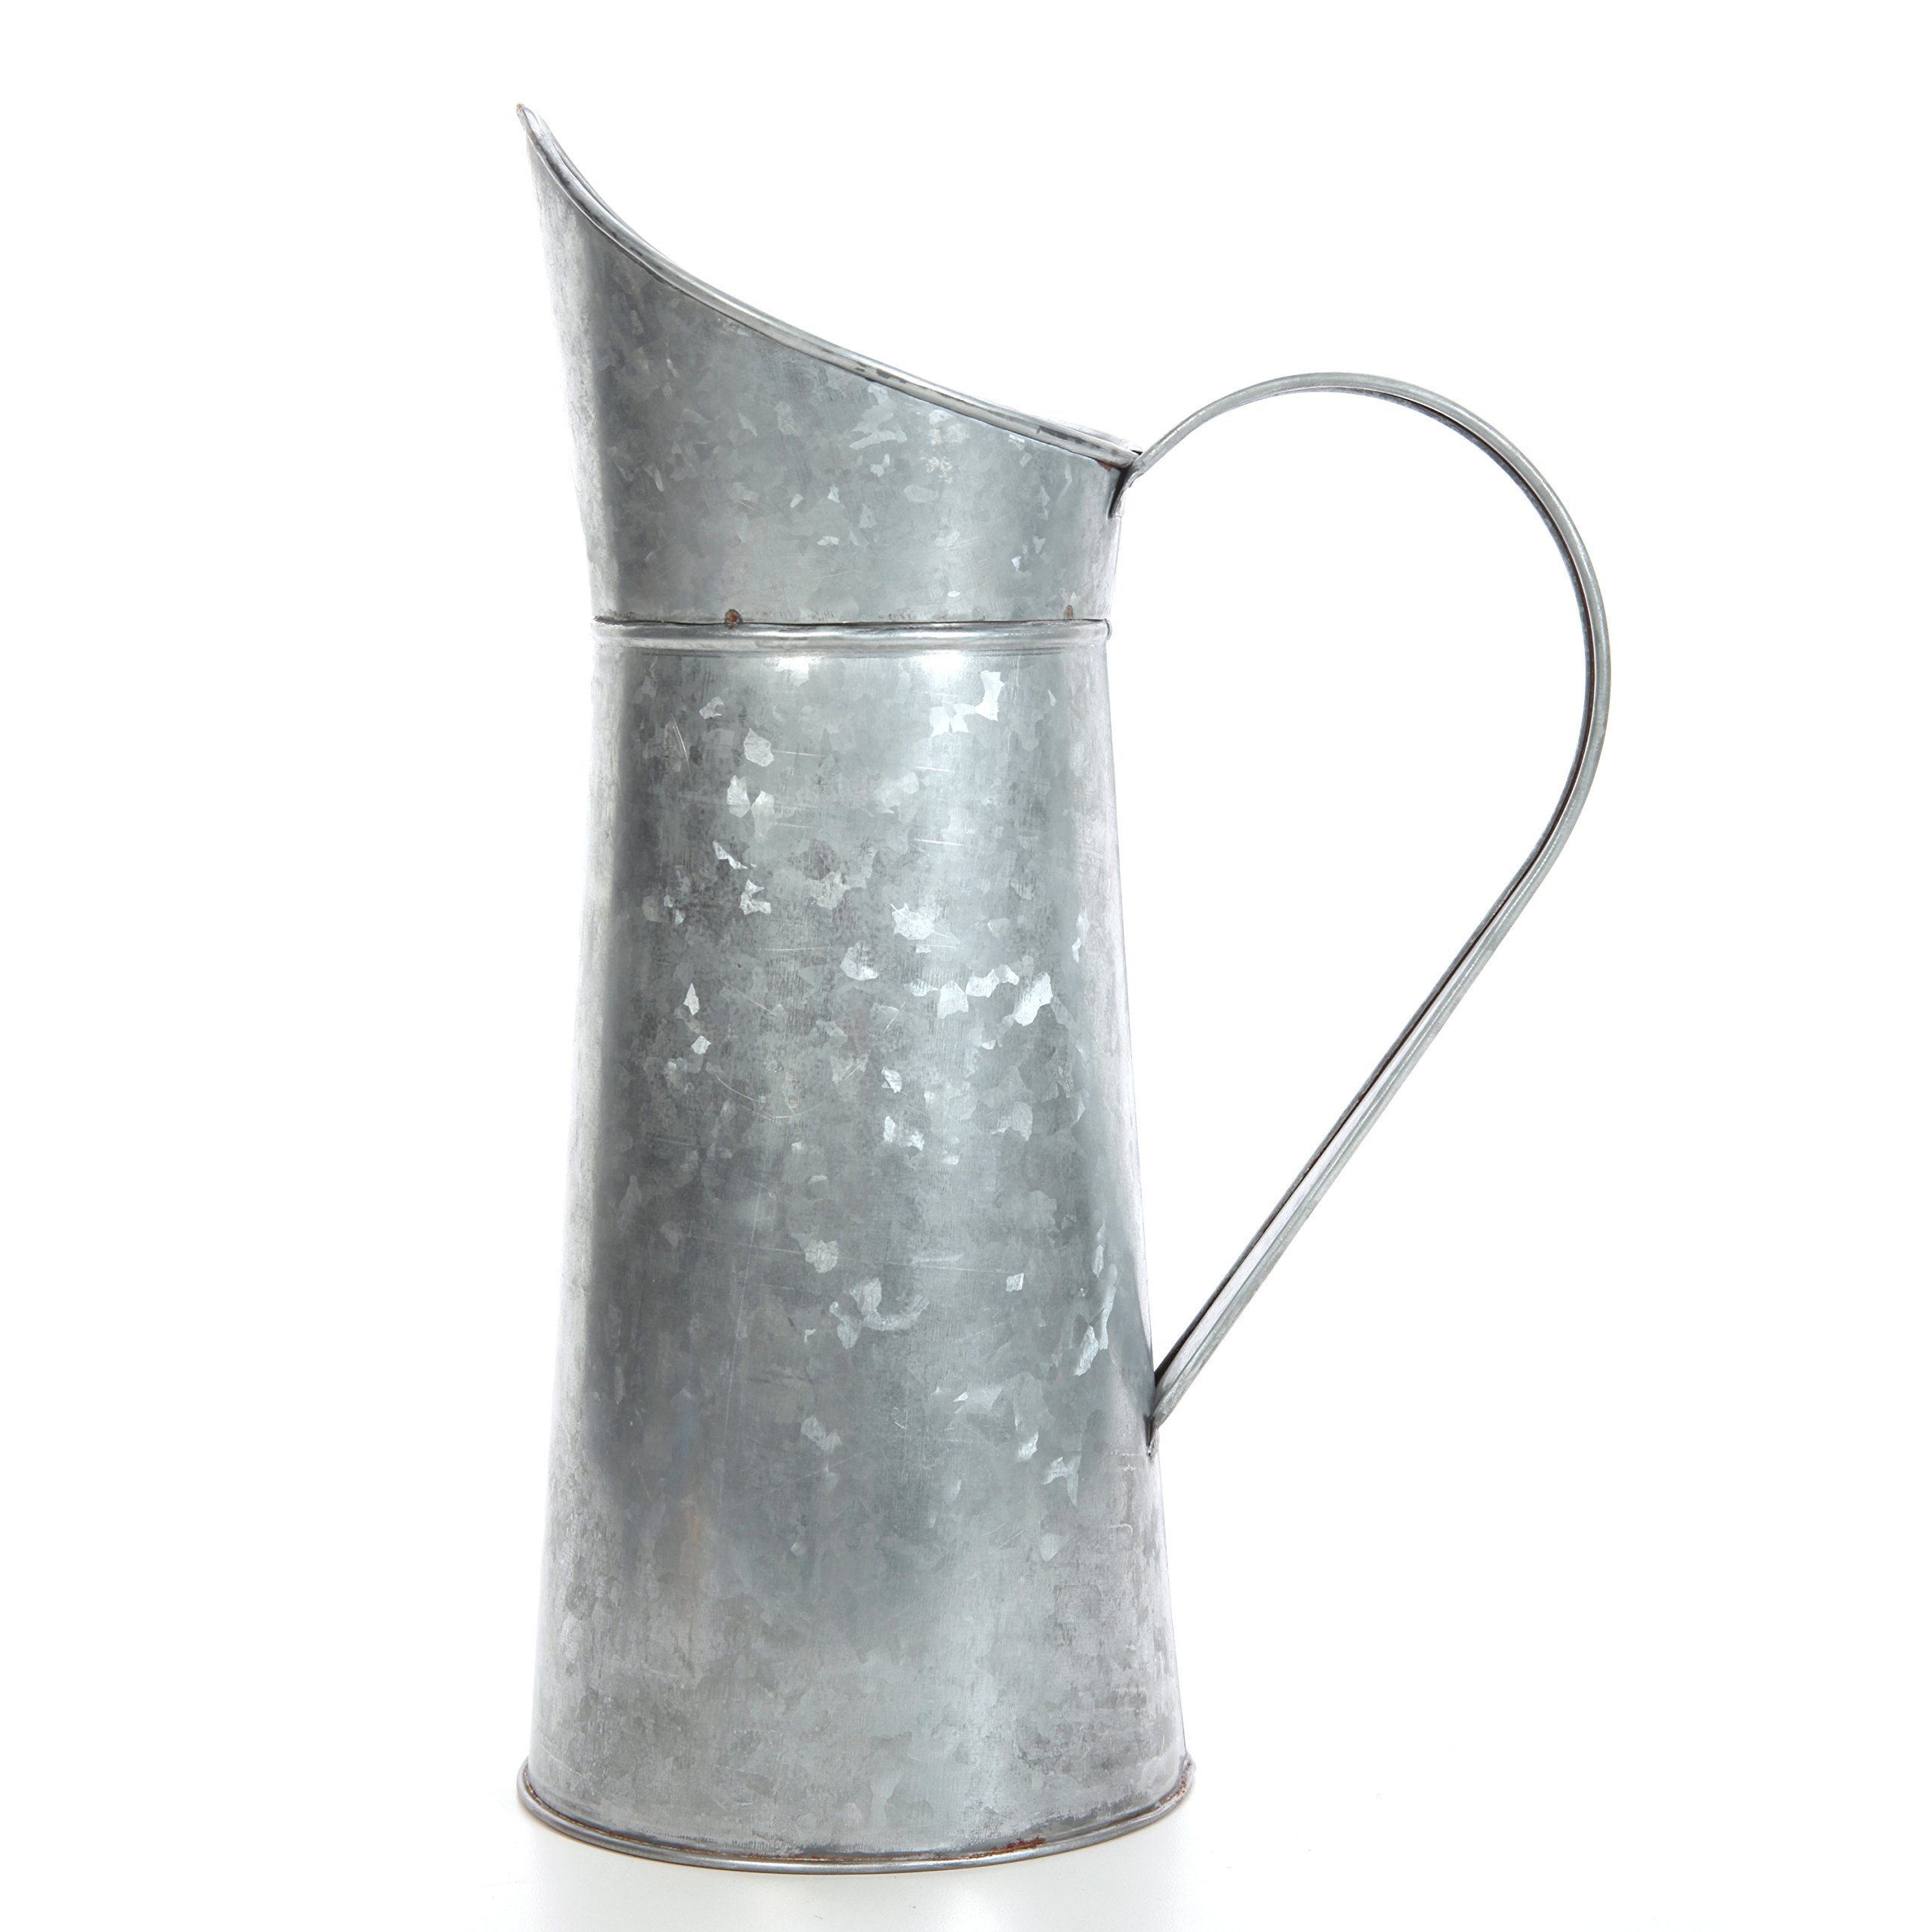 Hosley Galvanized Pitcher 14 Inch High Decorative Use Ideal Gift for Weddings Spa Flower Arrangements O3 by Hosley